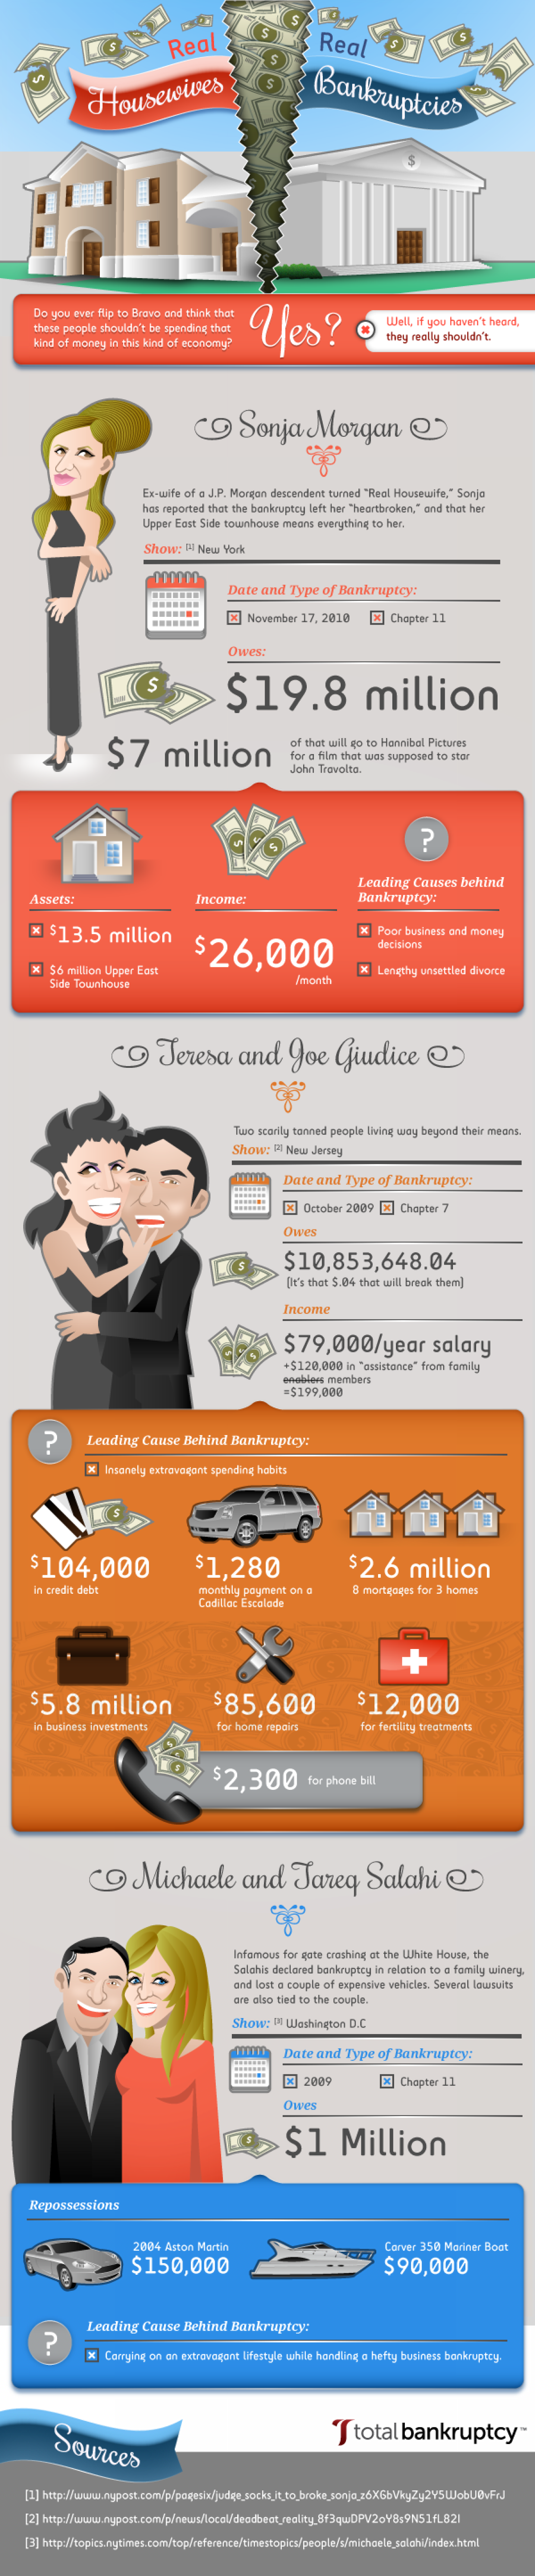 Real Housewives, Real Bankruptcies Infographic